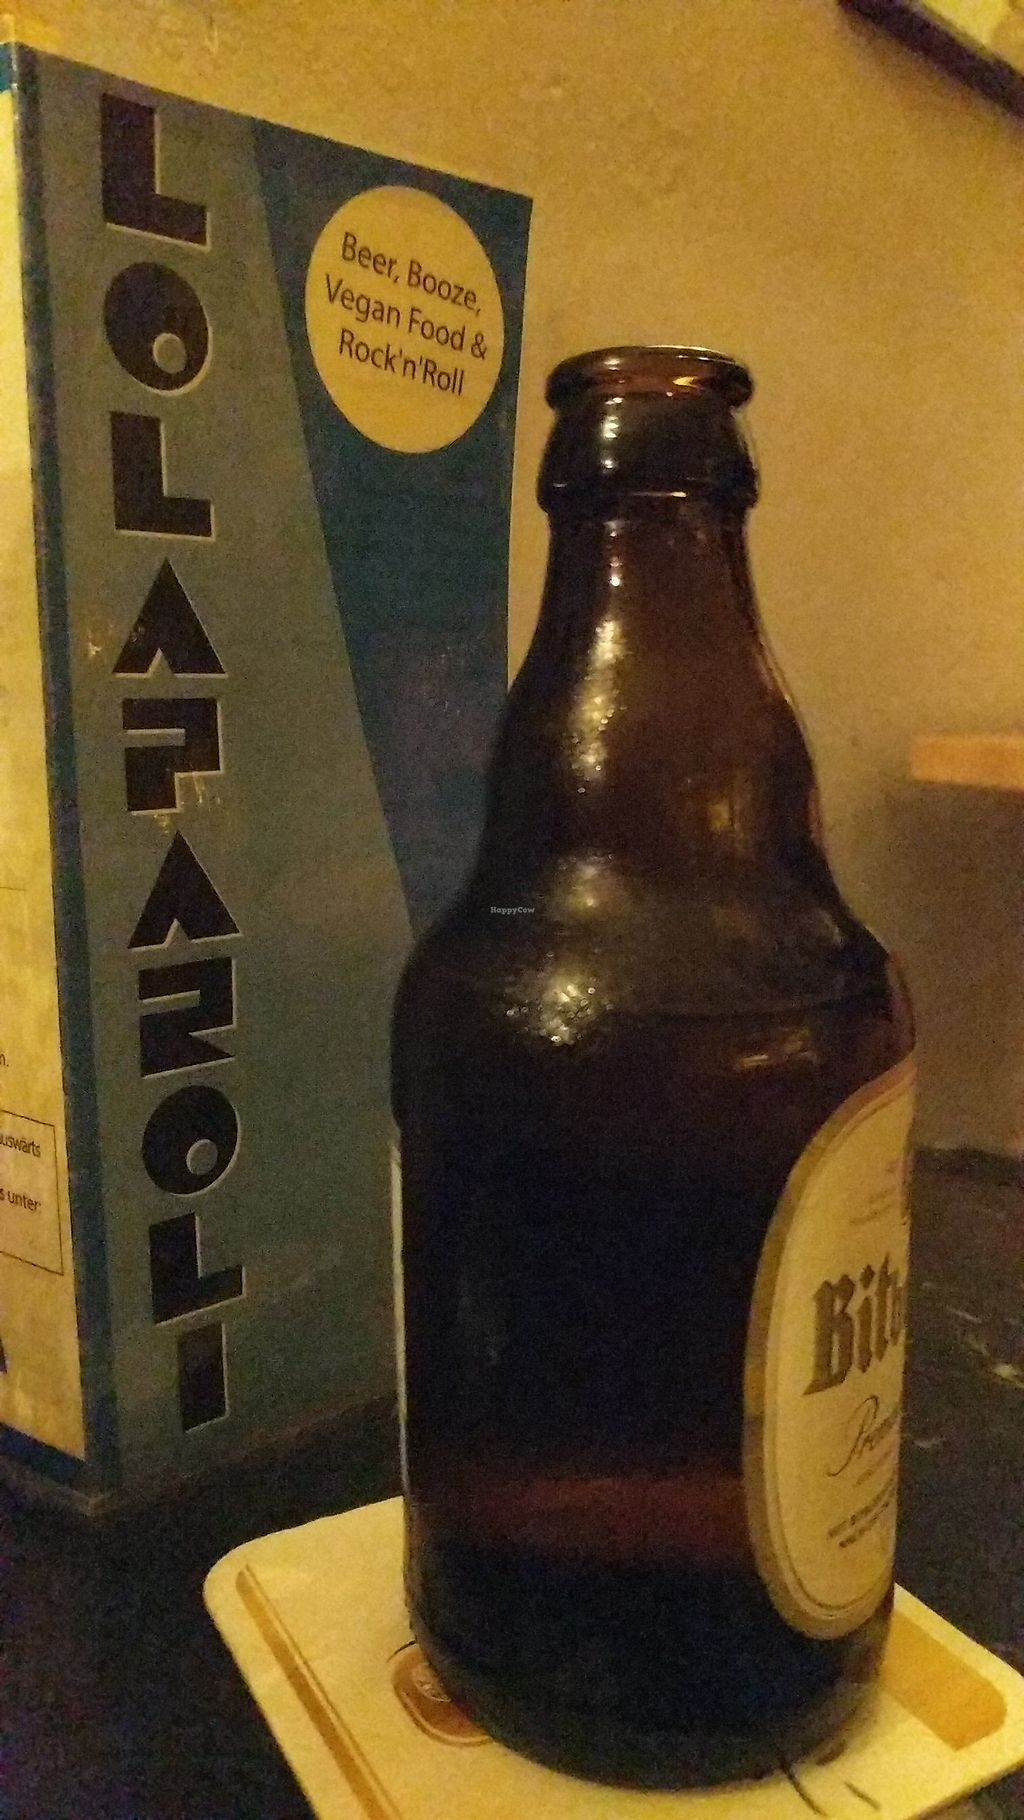 """Photo of Lolaparoli  by <a href=""""/members/profile/callyisprobablyacat"""">callyisprobablyacat</a> <br/>Bitte ein Bit!  Bitburger is among the local beers served at Lolaparoli <br/> September 3, 2017  - <a href='/contact/abuse/image/63164/300440'>Report</a>"""